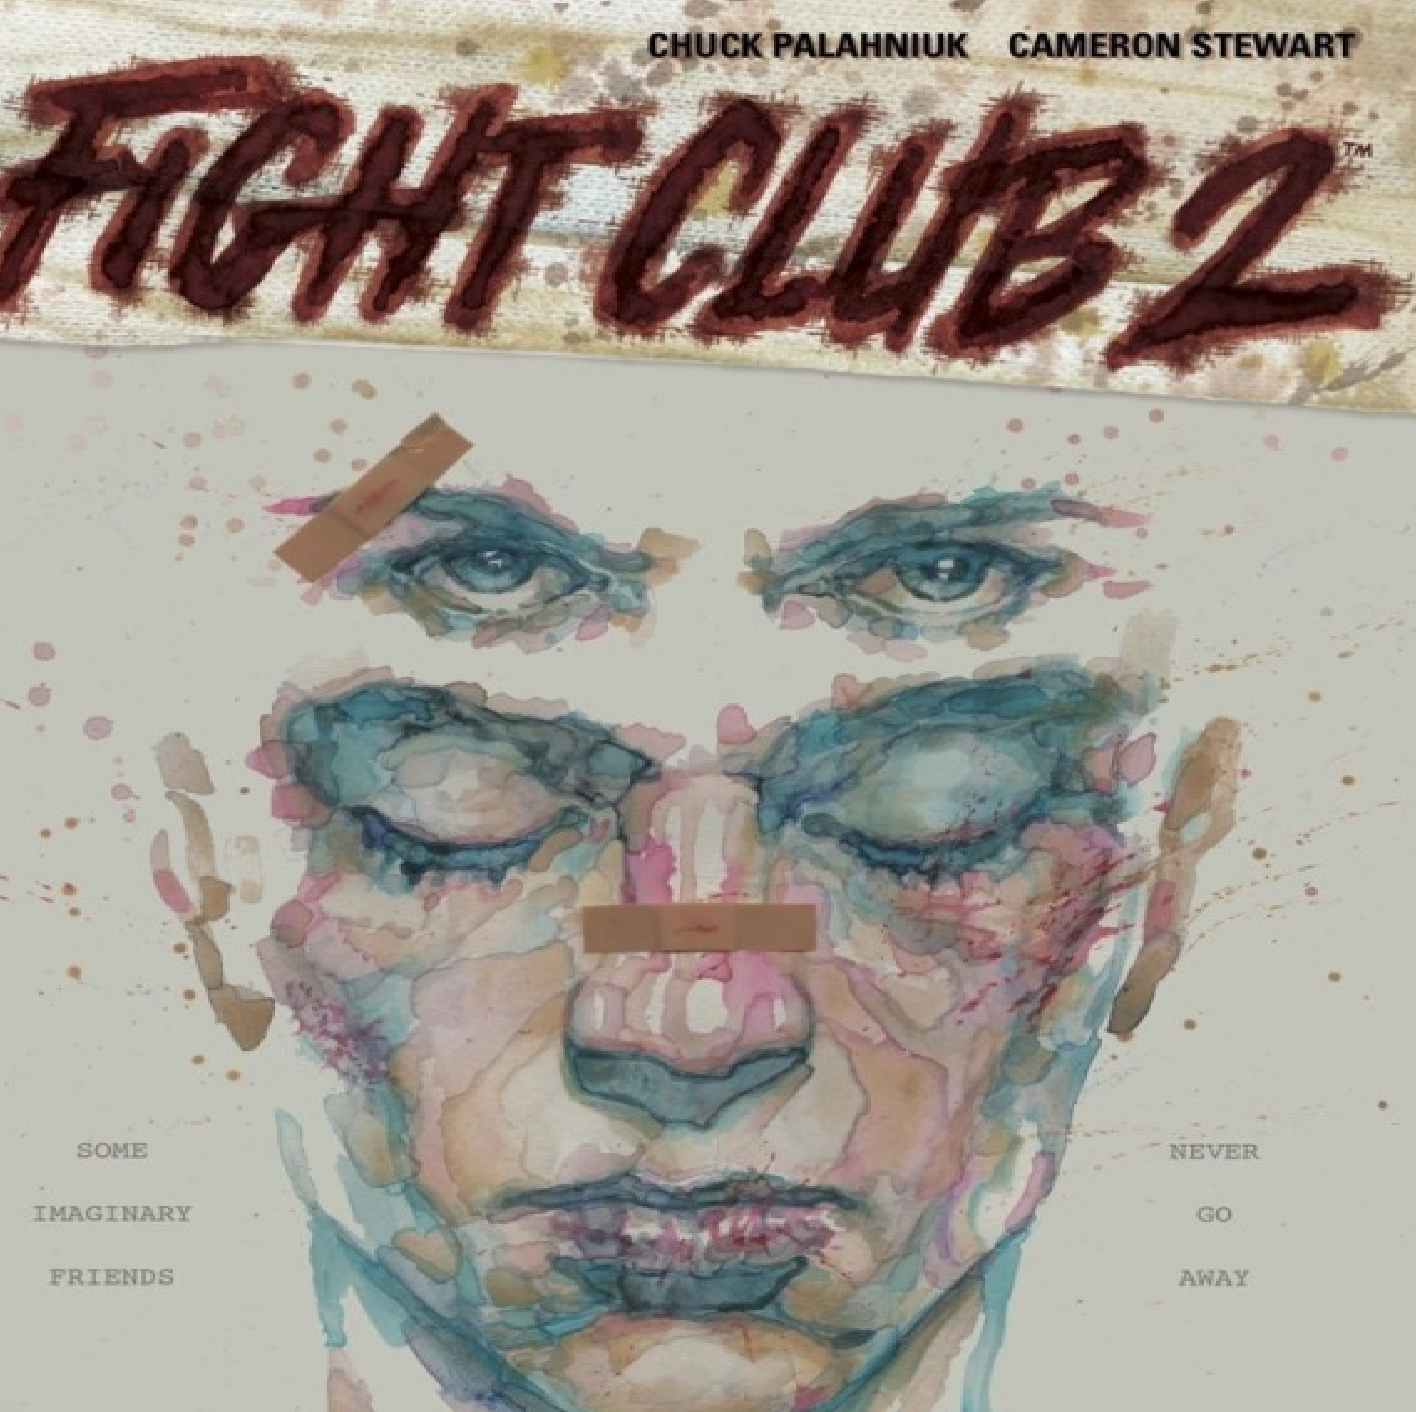 fight club 2 essay I argue in this essay  a generation of men raised by women: gender constructs in 'fight club  a generation of men raised by women: gender constructs in 'fight.